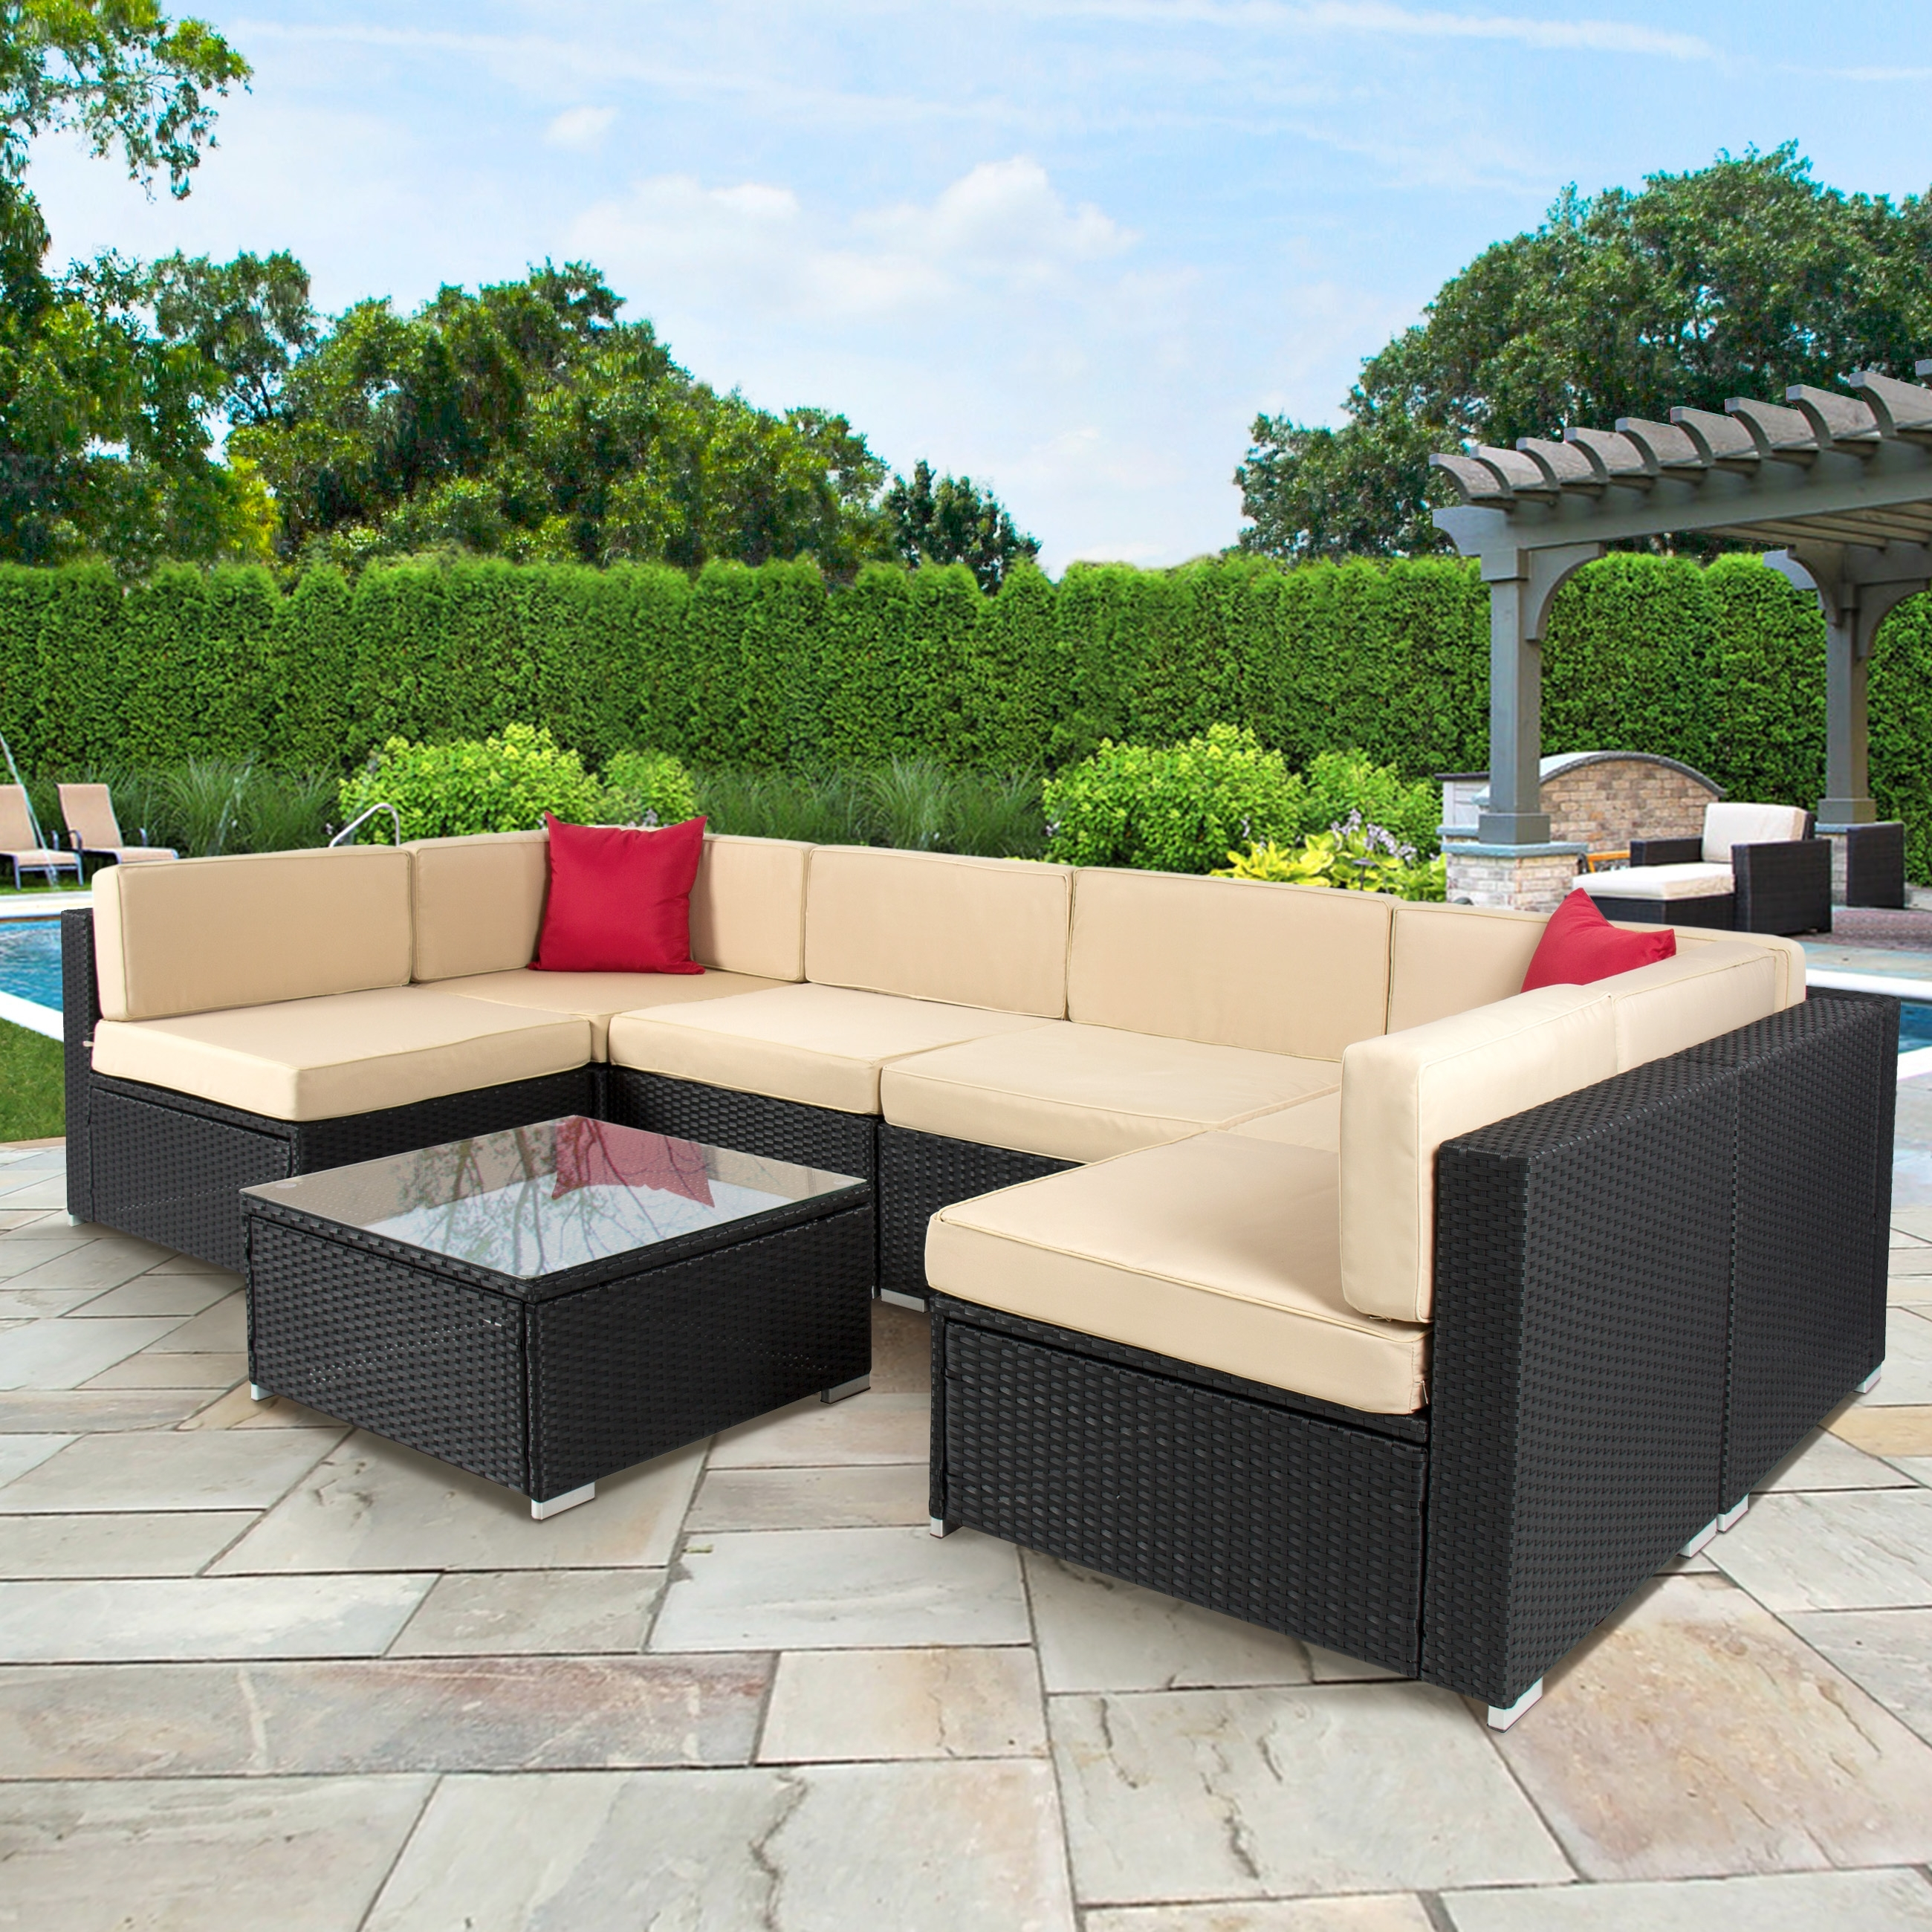 Jewel Patio Umbrellas Within Current How To Choose The Right Types Of Outdoor Patio Furniture? – Blogbeen (View 10 of 20)